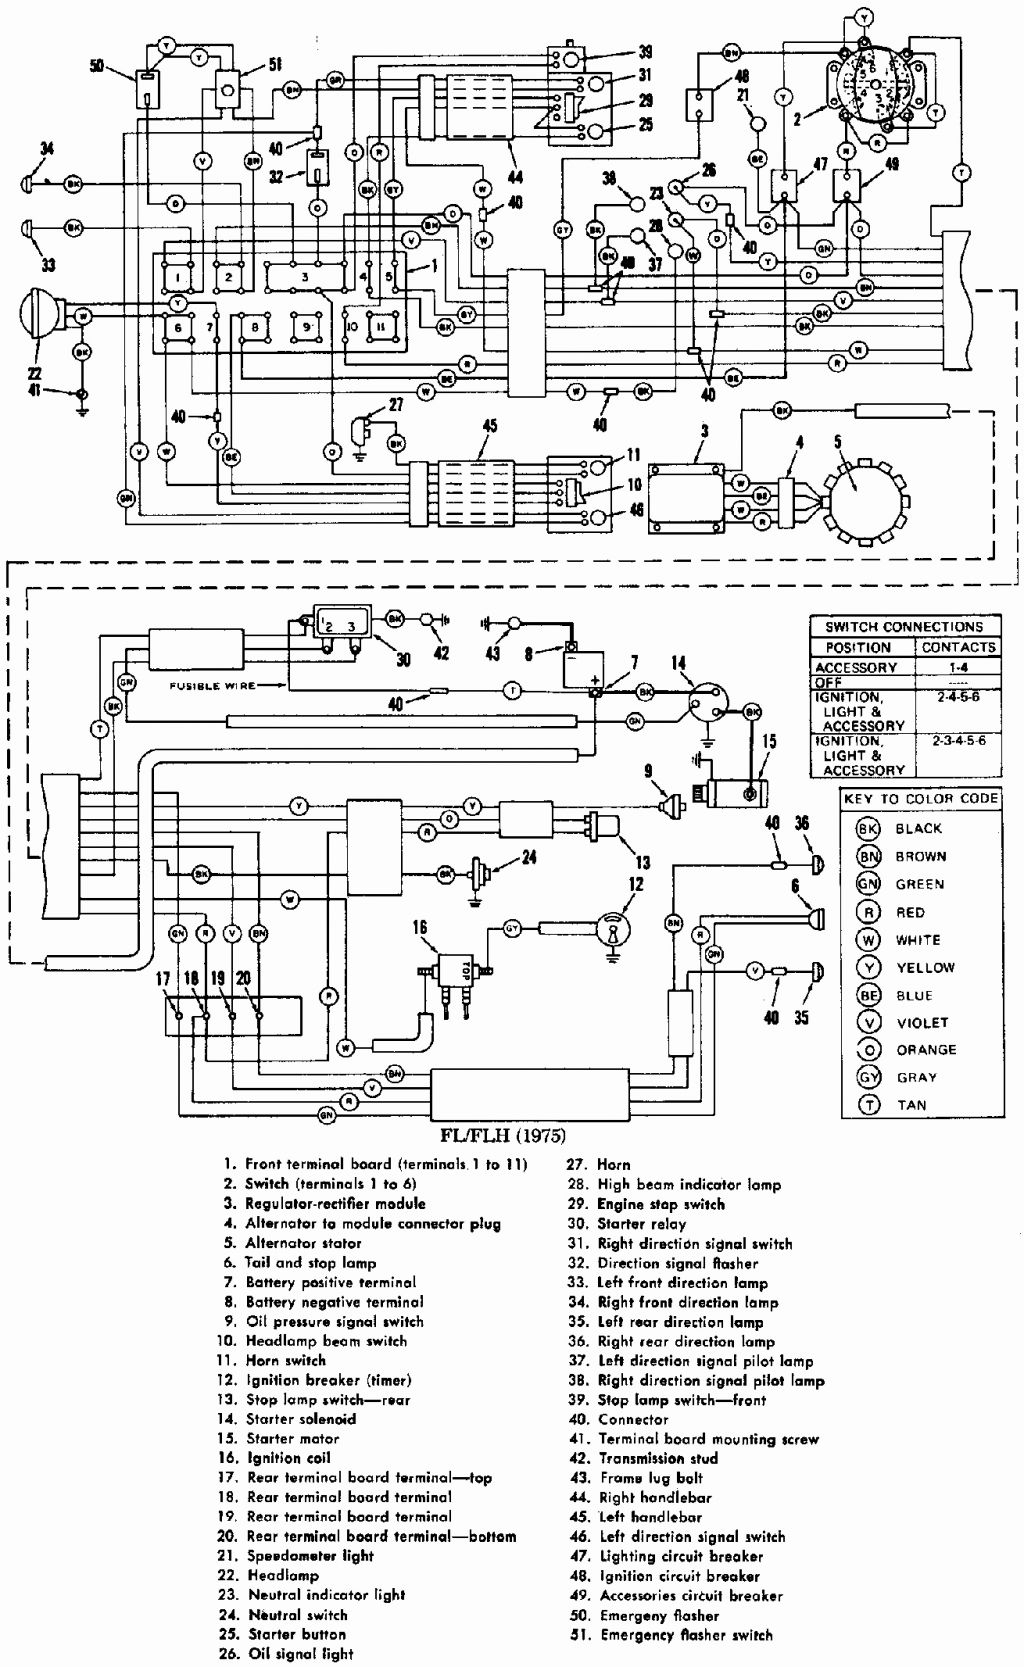 Harley Starter Relay Wiring Diagram | Wiring Diagram Database on farmall h wiring diagram, 12 volt led light wiring diagram, 6v to 12v wiring diagram, allis chalmers wd 12 volt wiring diagram, 12 volt coil wiring diagram, no battery wiring diagram, farmall 12 volt wiring diagram, 6 volt system diagram, 9n 12v wiring diagram, farmall tractor wiring diagram, 6 volt positive ground wiring, 6 volt battery diagram, 6 volt farmall cub wiring-diagram, 12 volt boat wiring diagram, 6 volt led bulbs, generator to alternator conversion diagram, 1936 chevy wiring diagram, 4 pin trailer light wiring diagram, 12 to 6 volt diagram, 12 lead 3 phase motor wiring diagram,